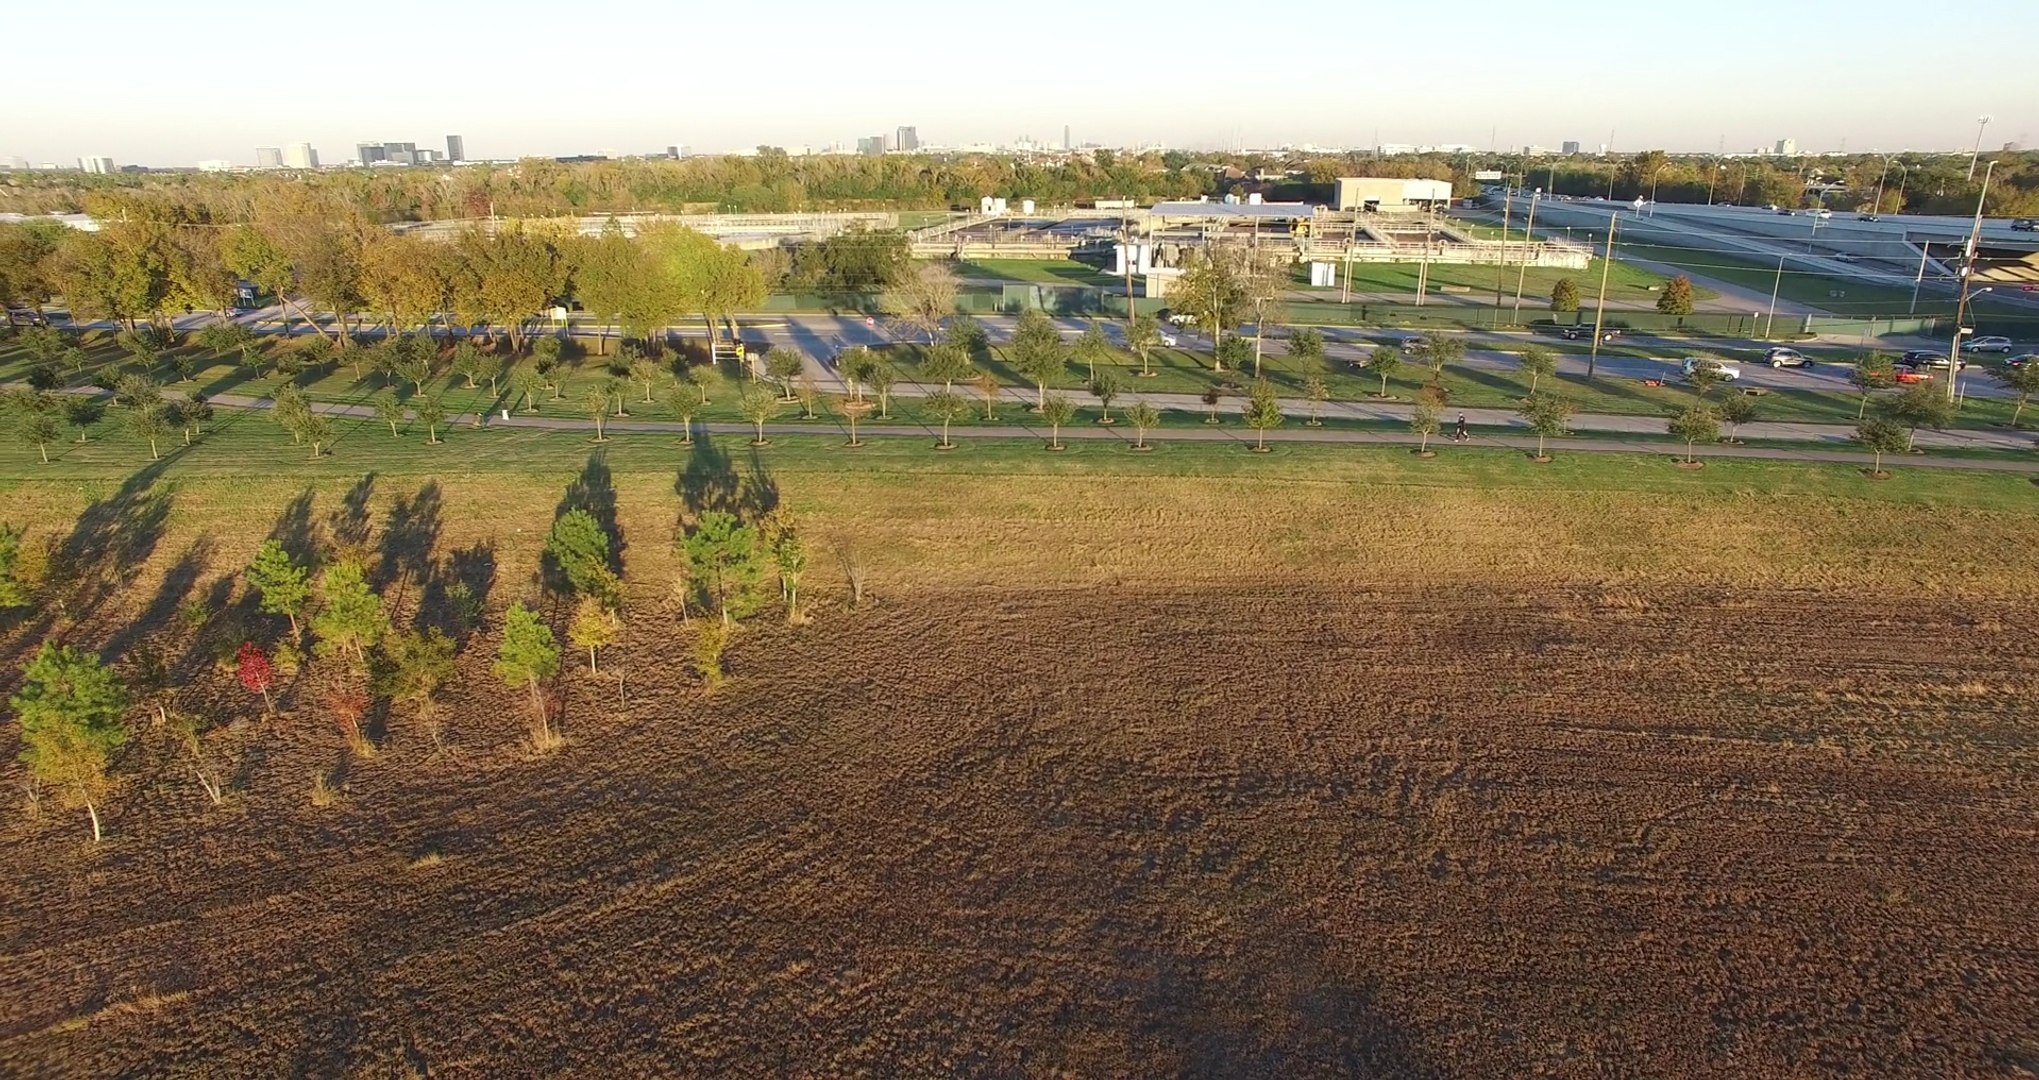 Testing Drone Phantom 3 Pro at Mike Driscoll Park in H-Town